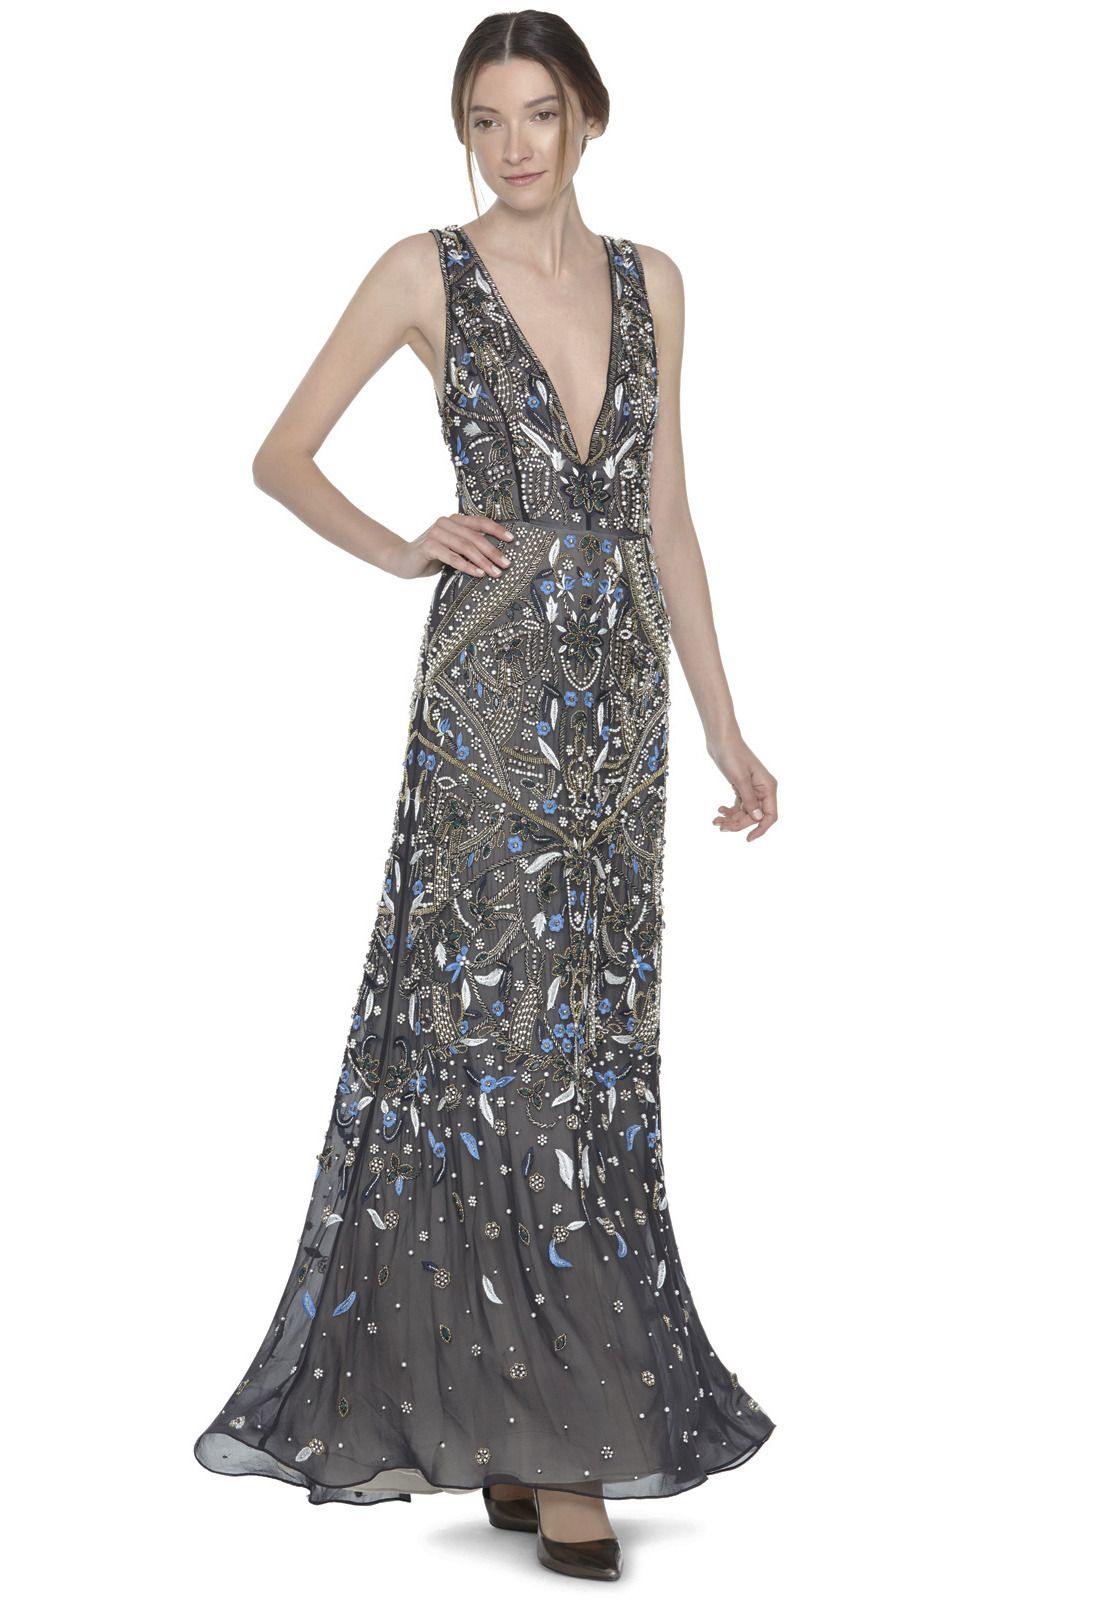 MARNEE PLUNGING GOWN by Alice + Olivia $1998 | STYLE INSPIRATION ...